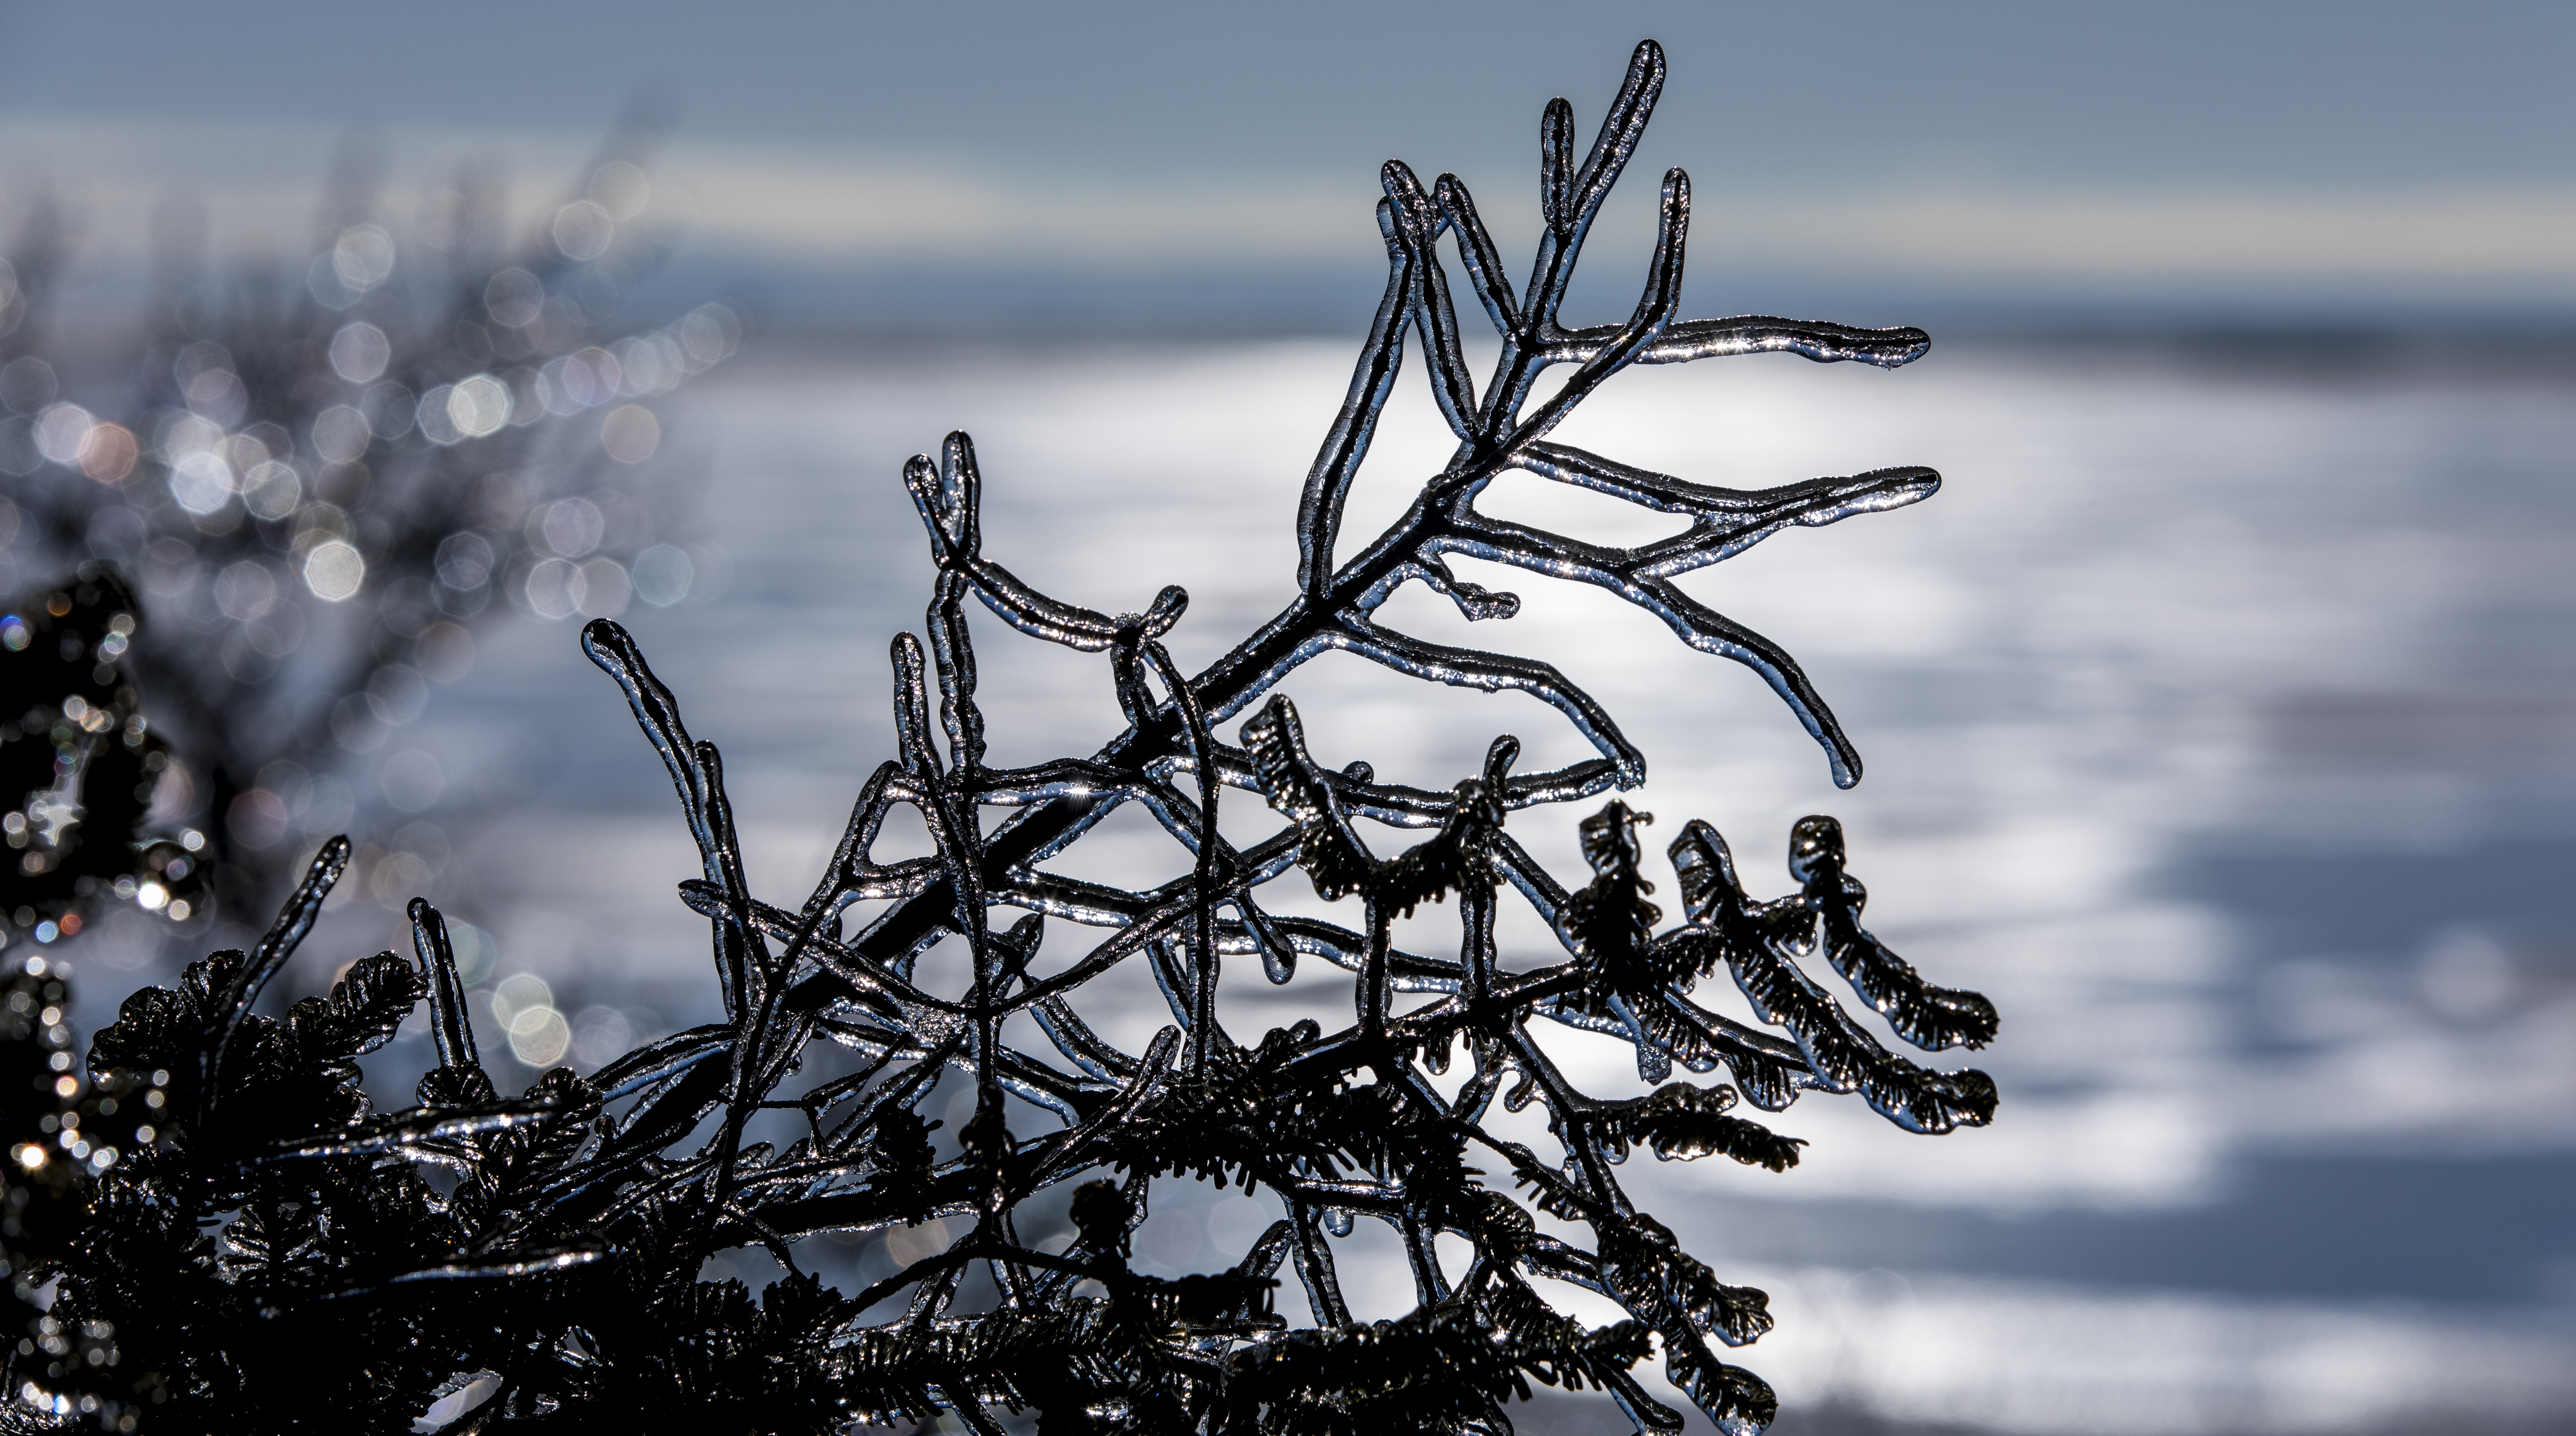 ice covered tree branch